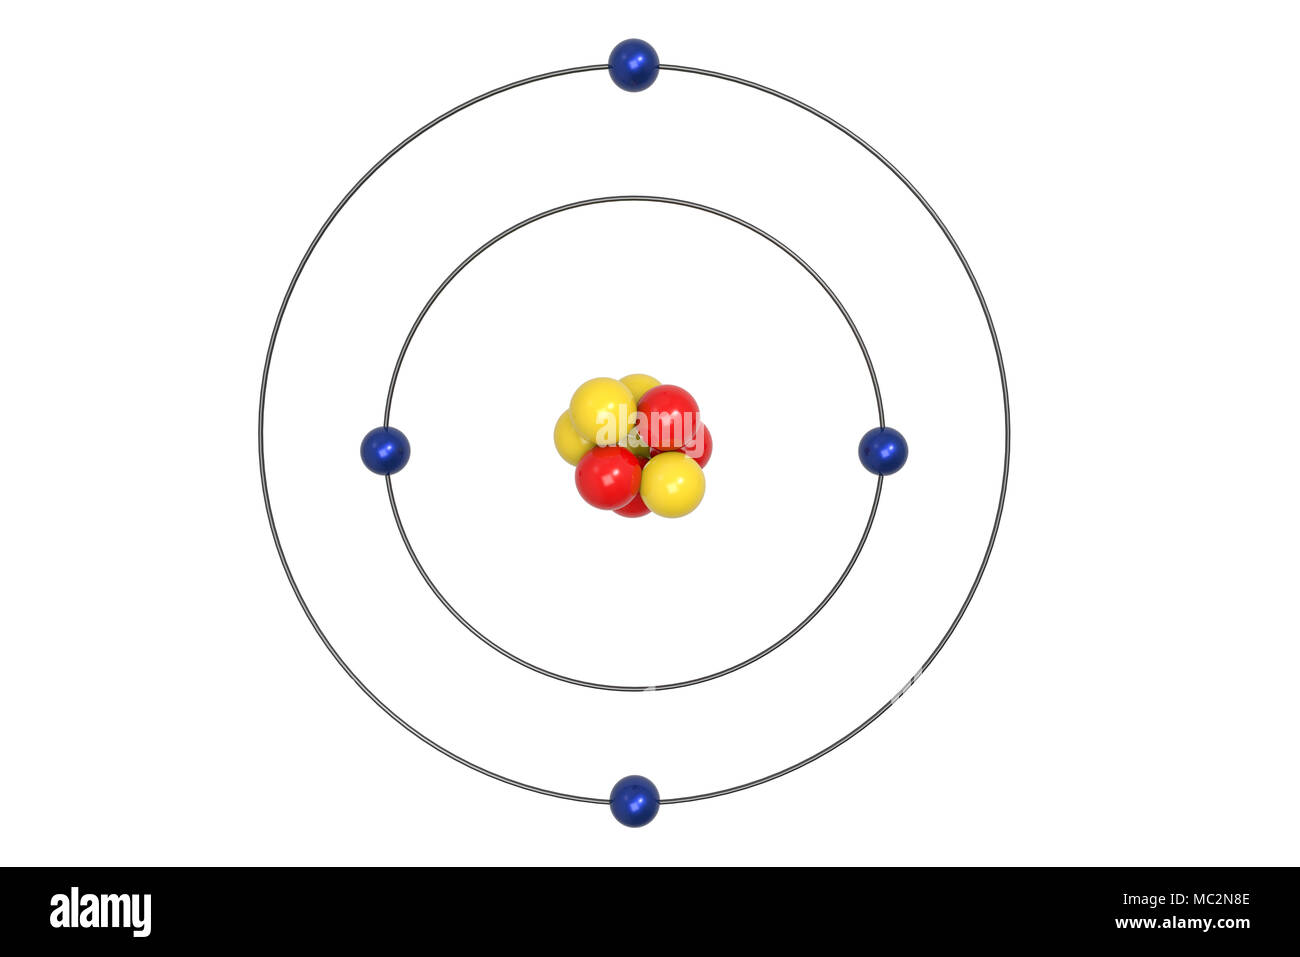 beryllium atom bohr model with proton, neutron and electron  3d  illustration - stock image